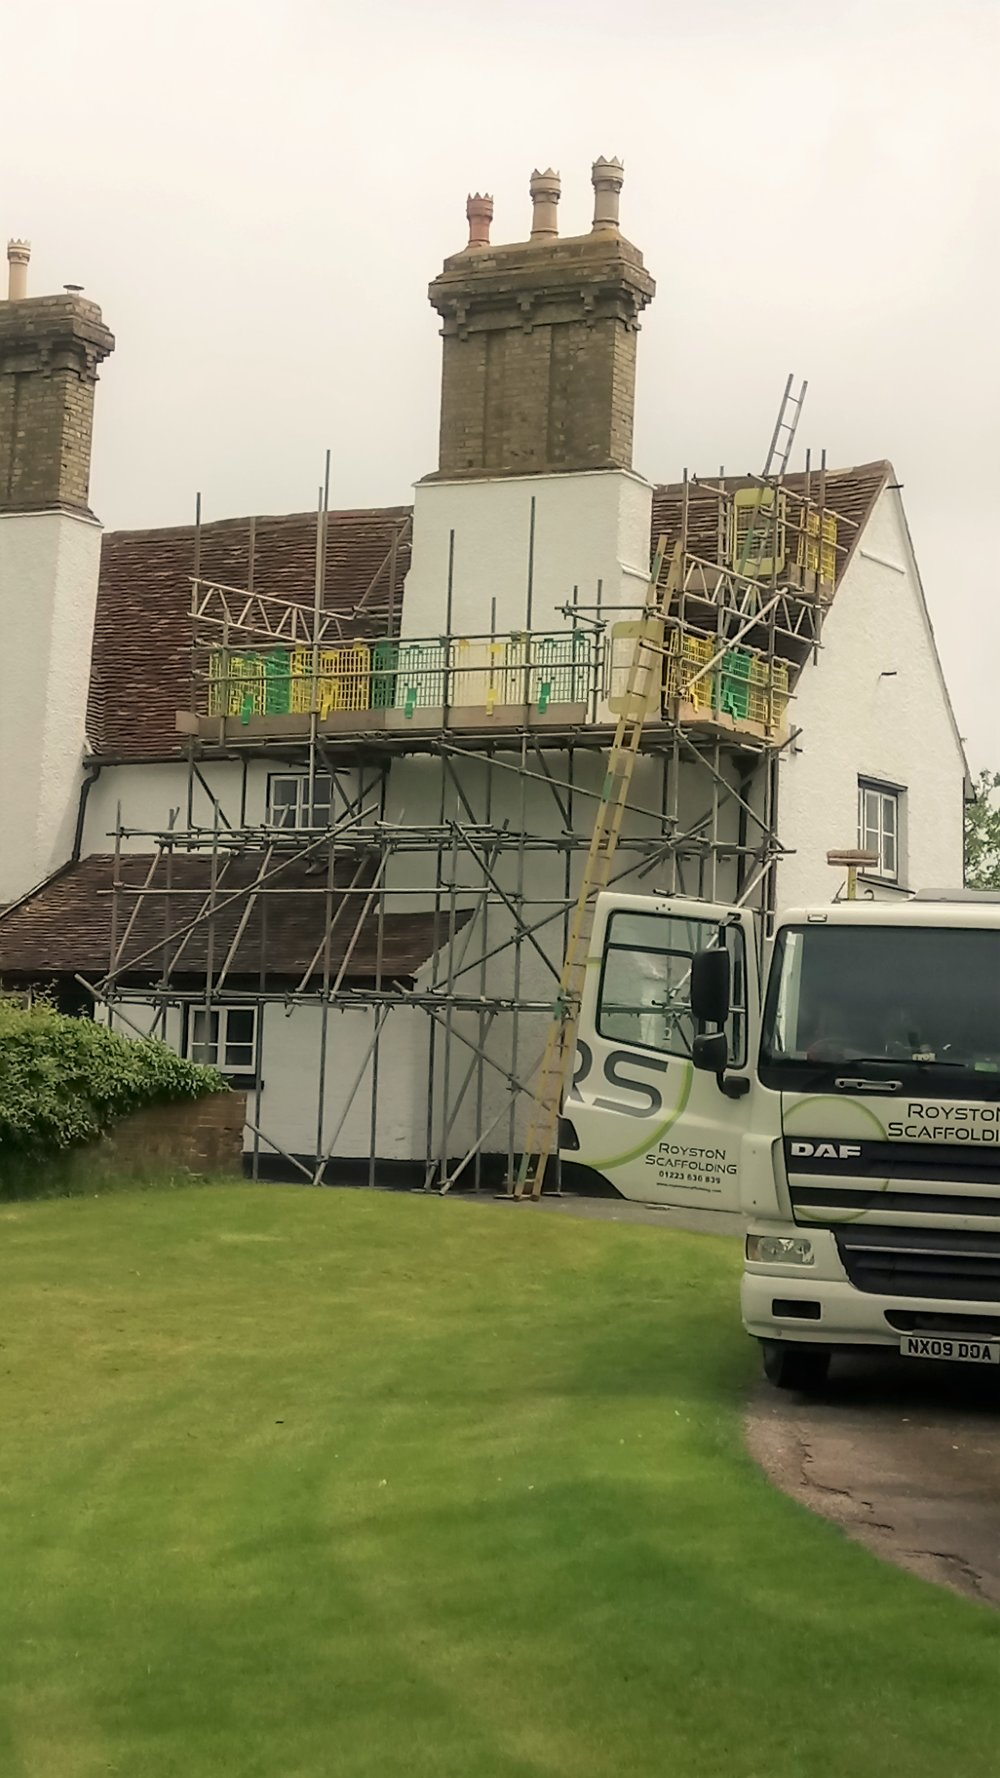 Royston-Scaffolding-projects-2.JPG